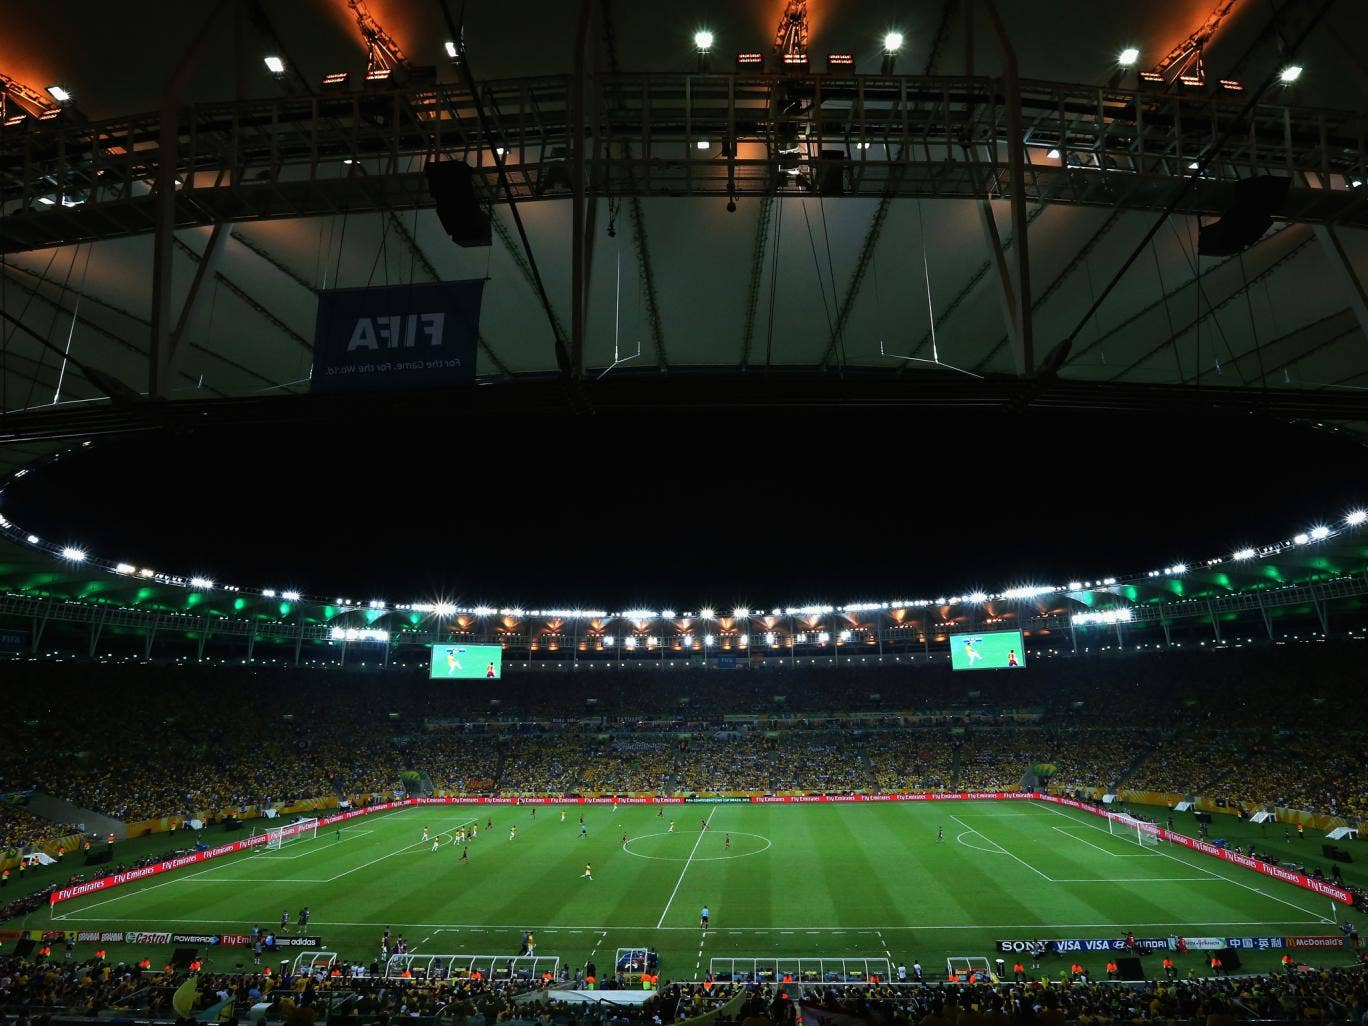 The Maracana stadium during the Confederations Cup final